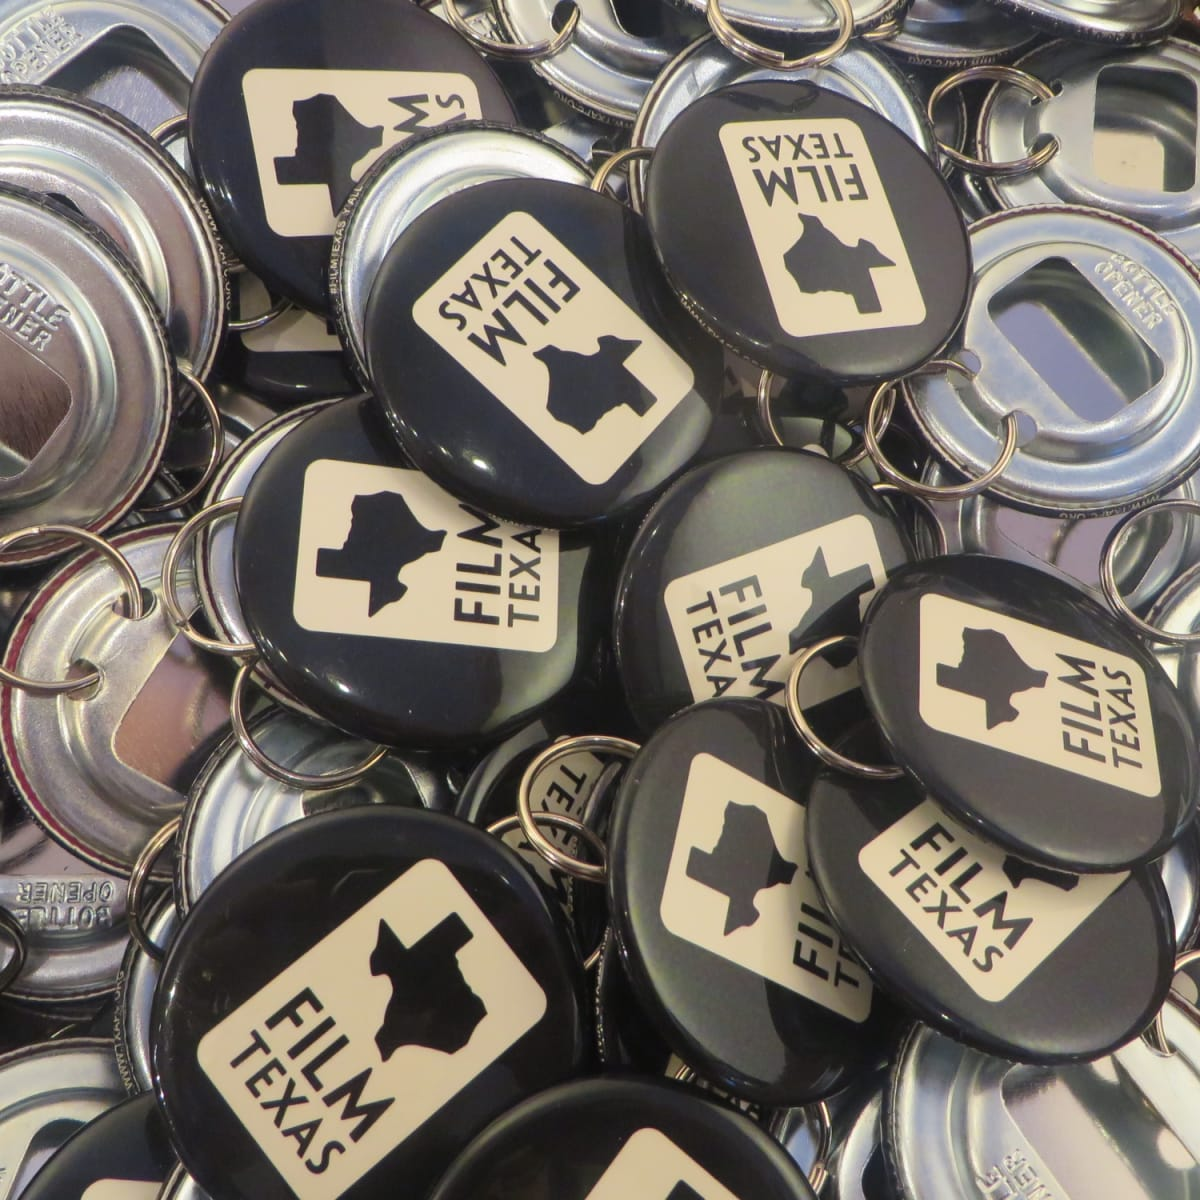 Film Texas bottle openers at Sundance Film Festival reception